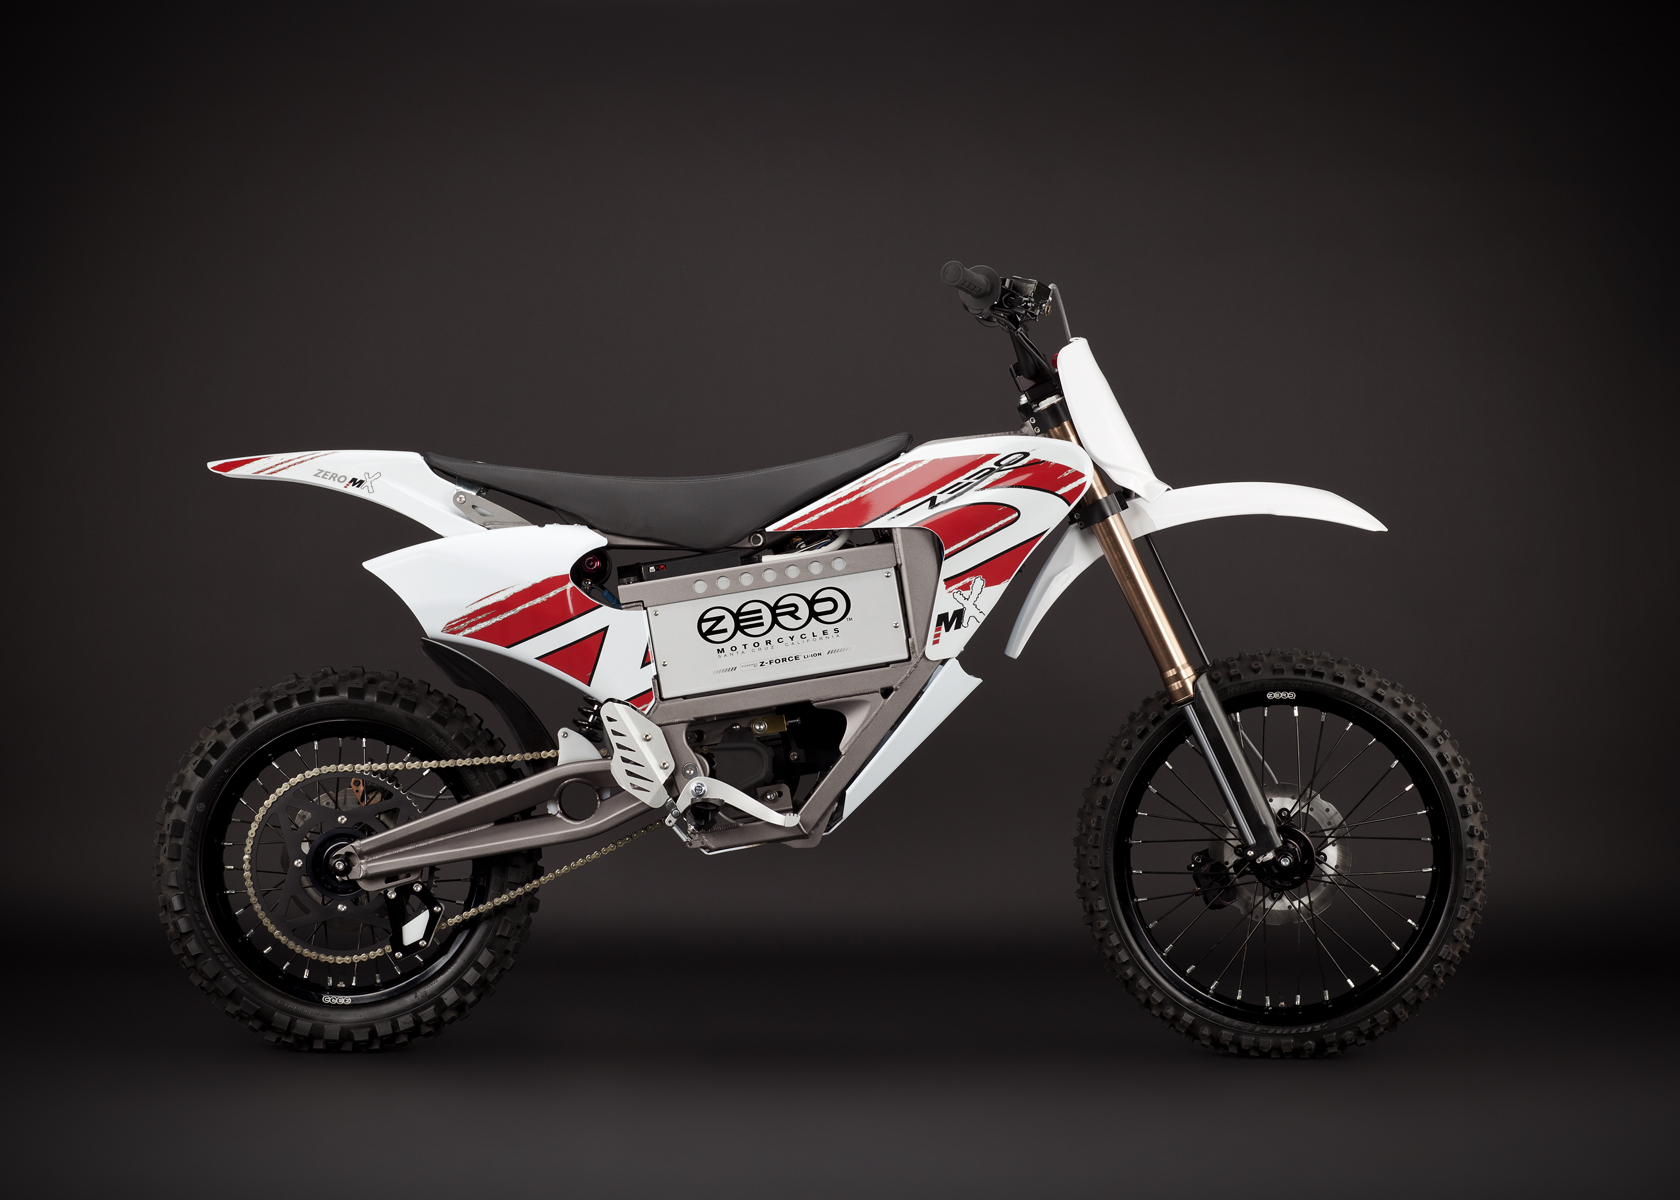 '.2011 Zero MX Electric Motorcycle: Right Profile, Dirt Model.'